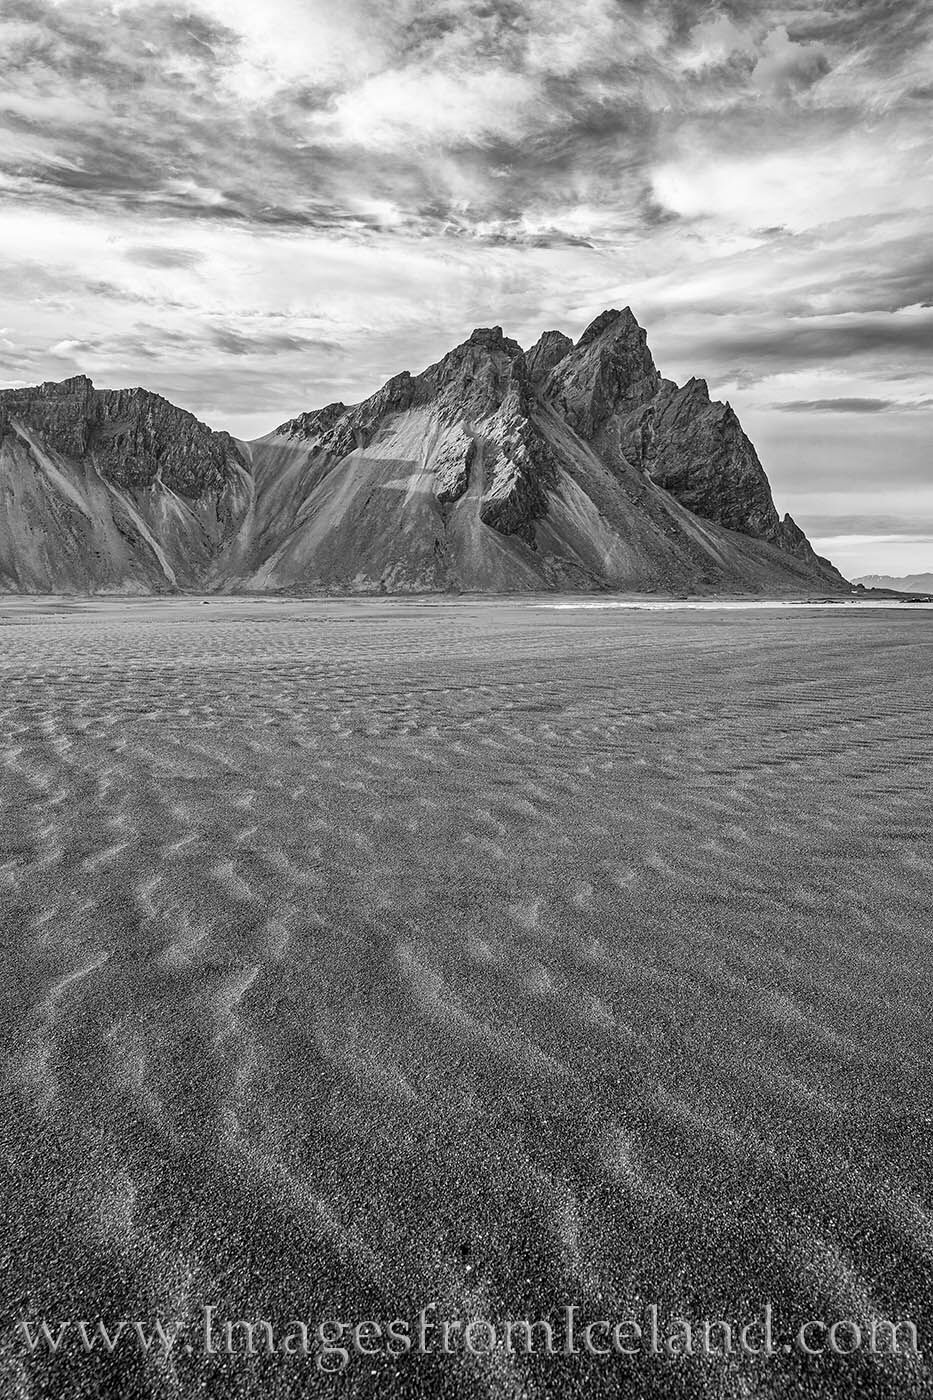 From south Iceland's Vestrahorn, this black and white photograph shows the iconic mountain in the late afternoon.